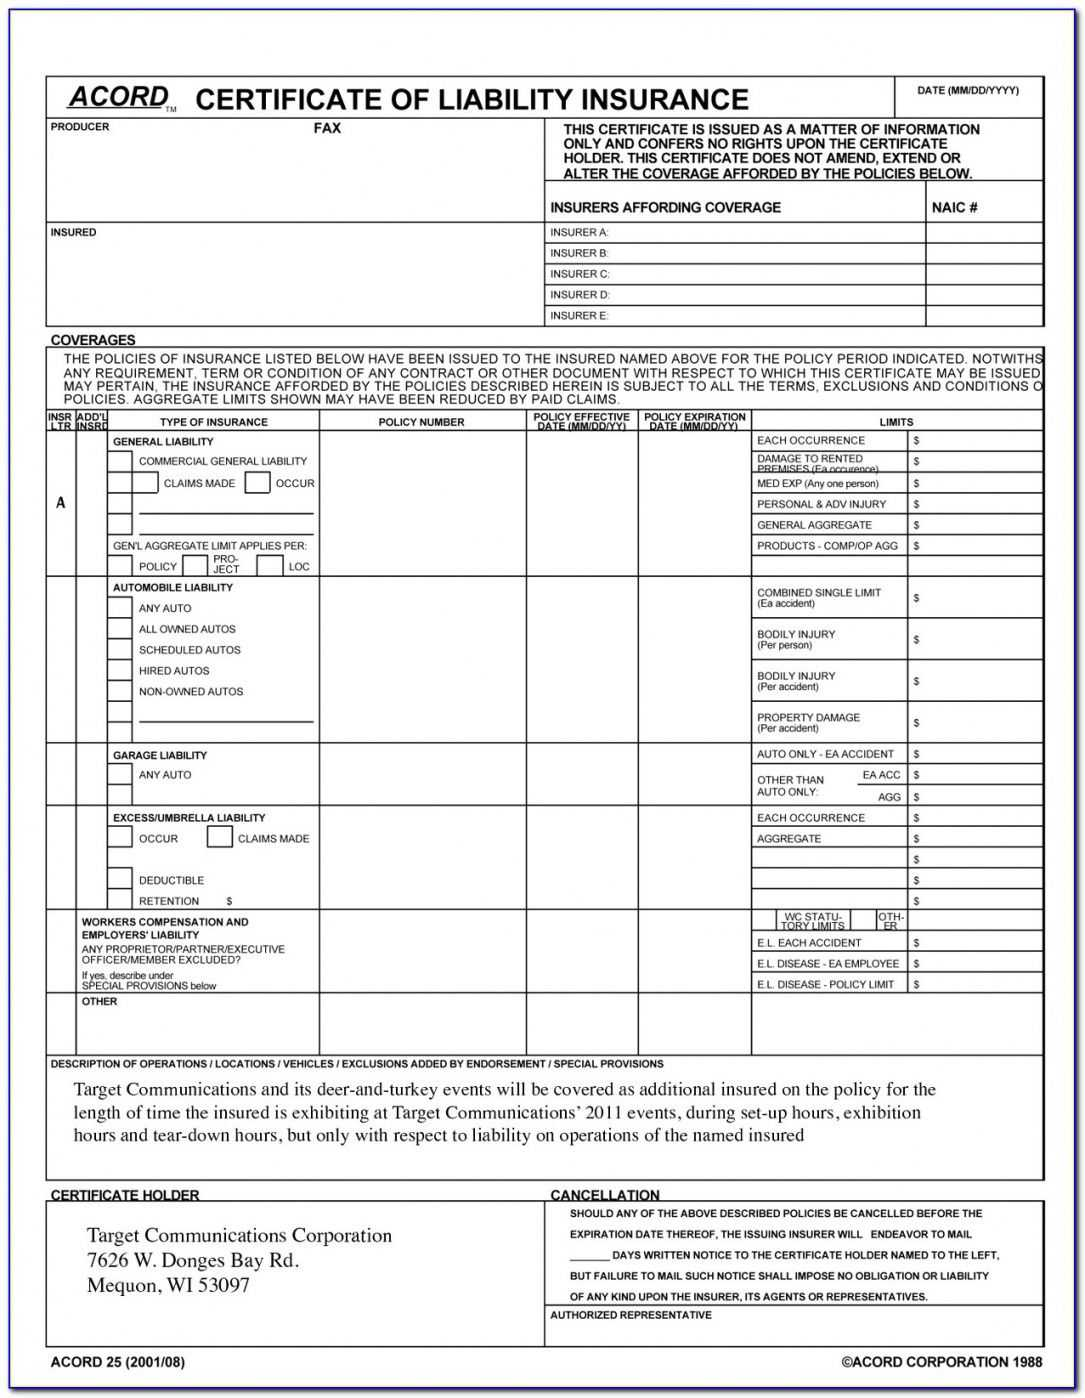 Accord Certificate Of Liability Insurance Form In Certificate Of Liability Insurance Template